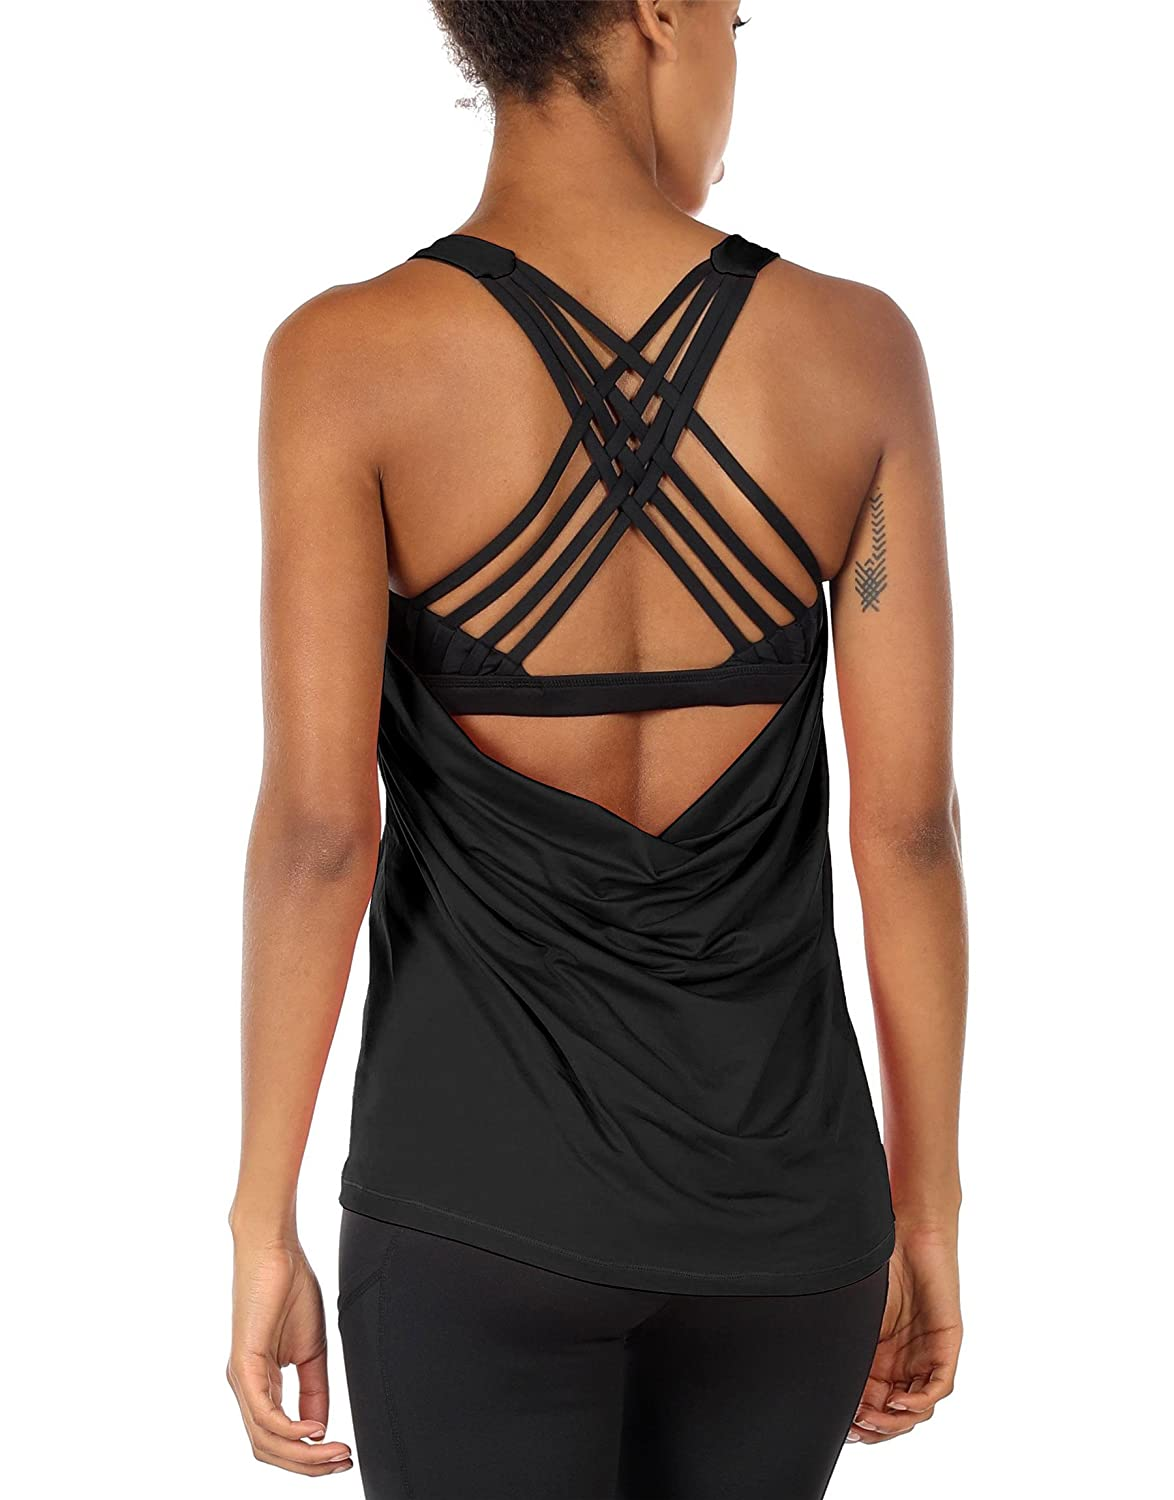 d5e73b35d9 icyzone Yoga Tops Workouts Clothes Activewear Built in Bra Tank Tops for  Women at Amazon Women s Clothing store